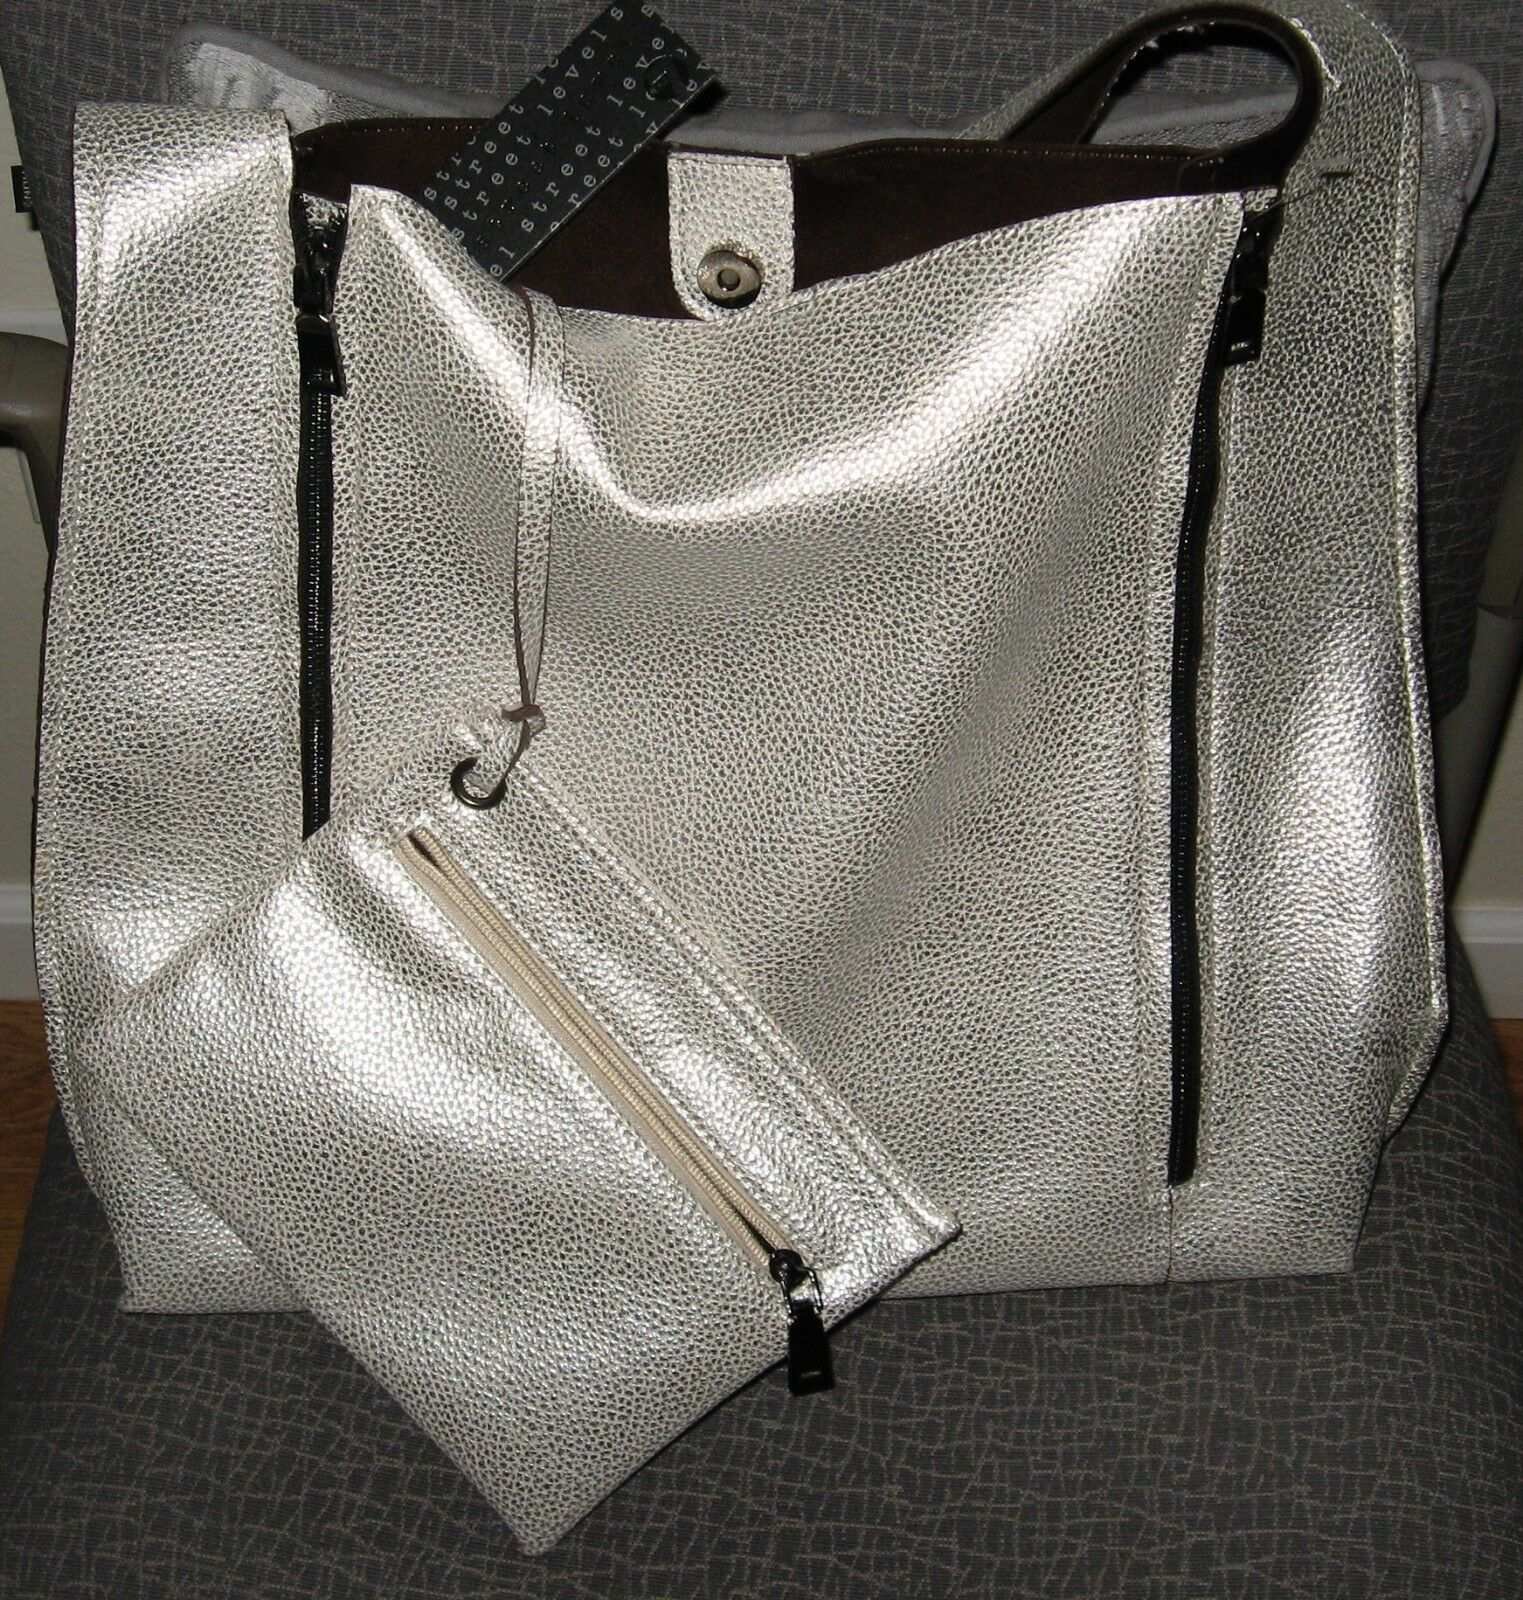 STREET LEVEL 7 SILVER PEBBLE FAUX LEATHER TOTE BAG + SMALL BAG - SET - NWT